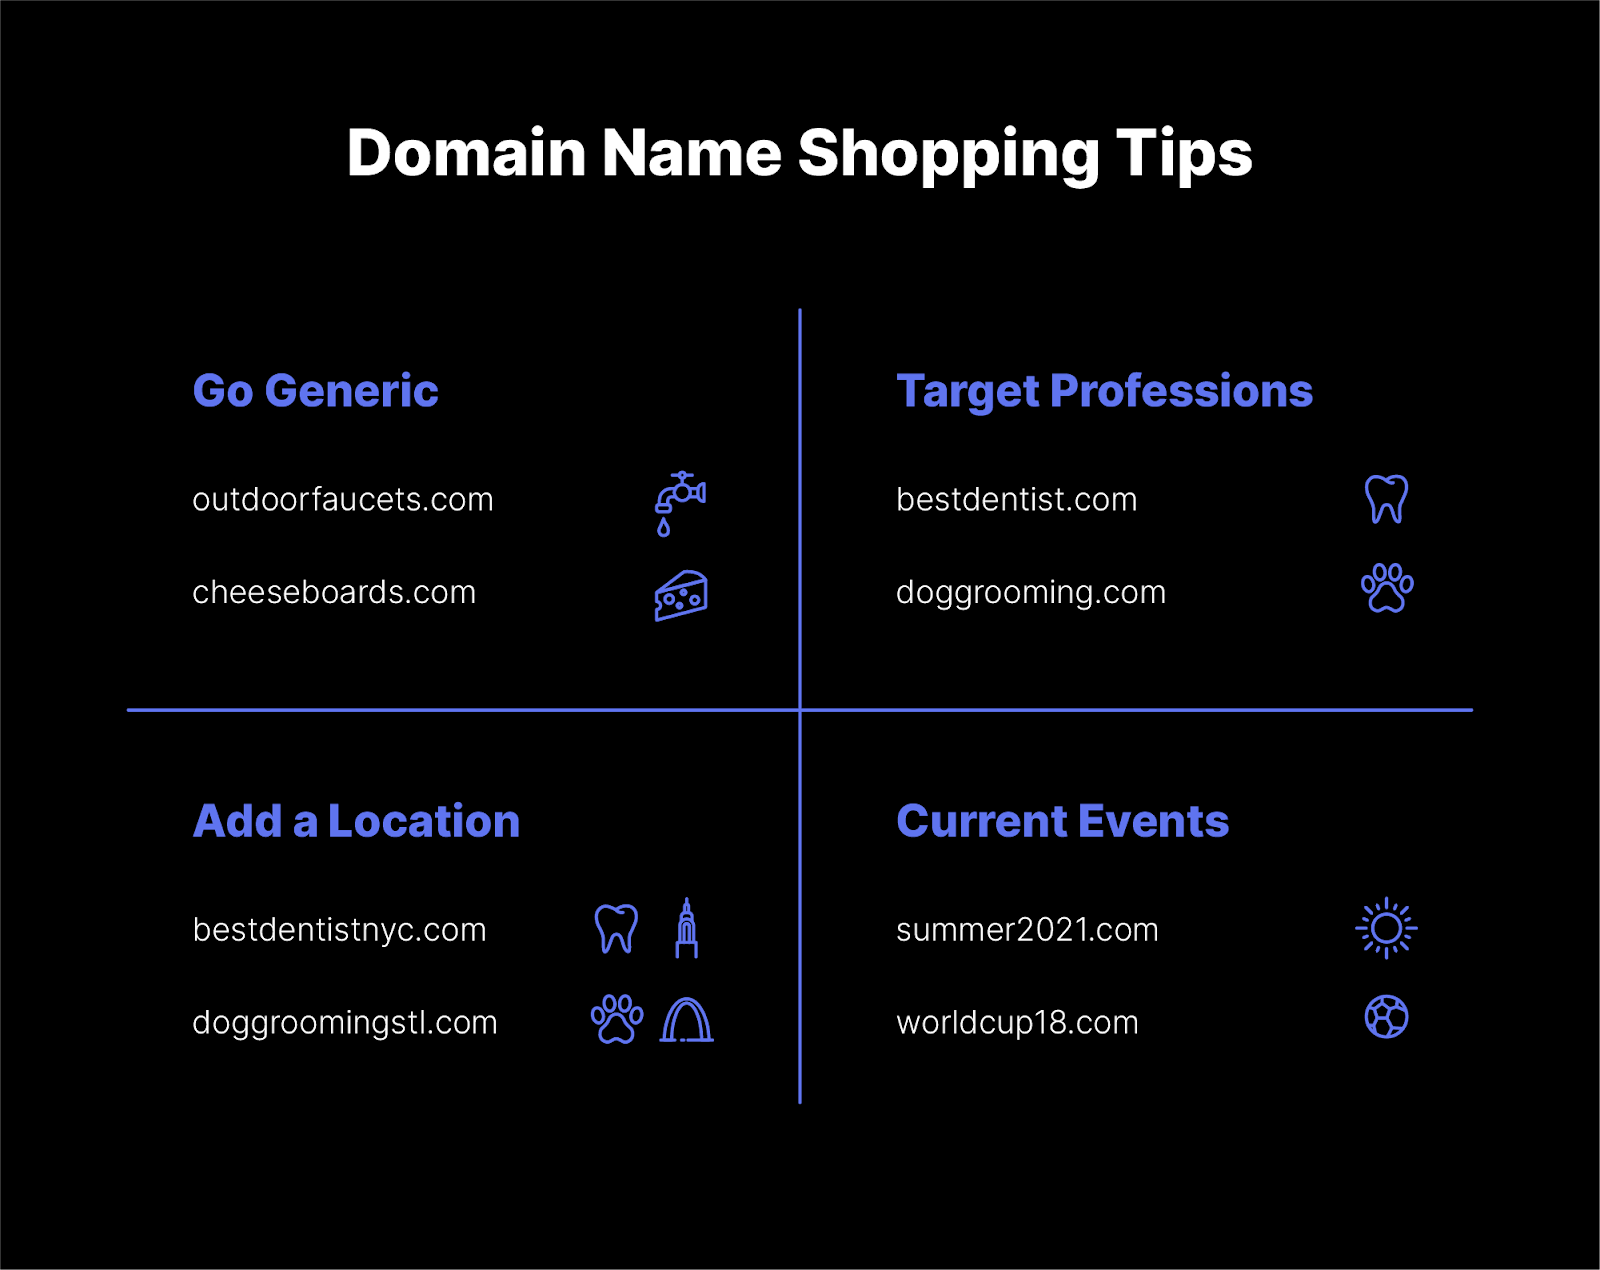 Come Up with Your Own Domain Names